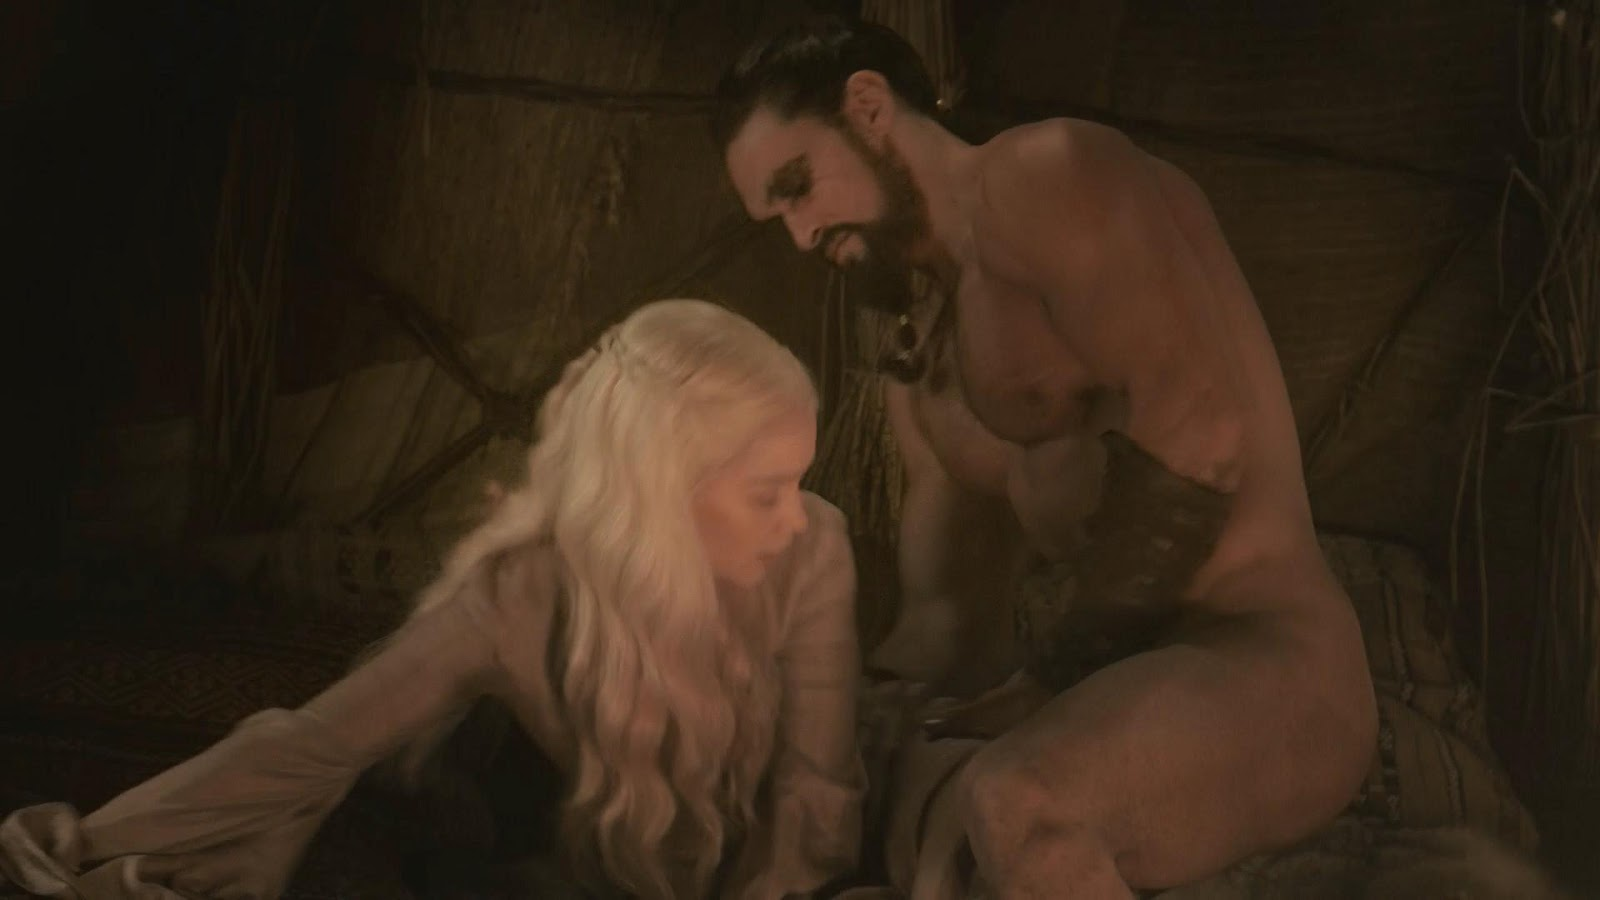 Apologise, but, Jason momoa game of thrones nude consider